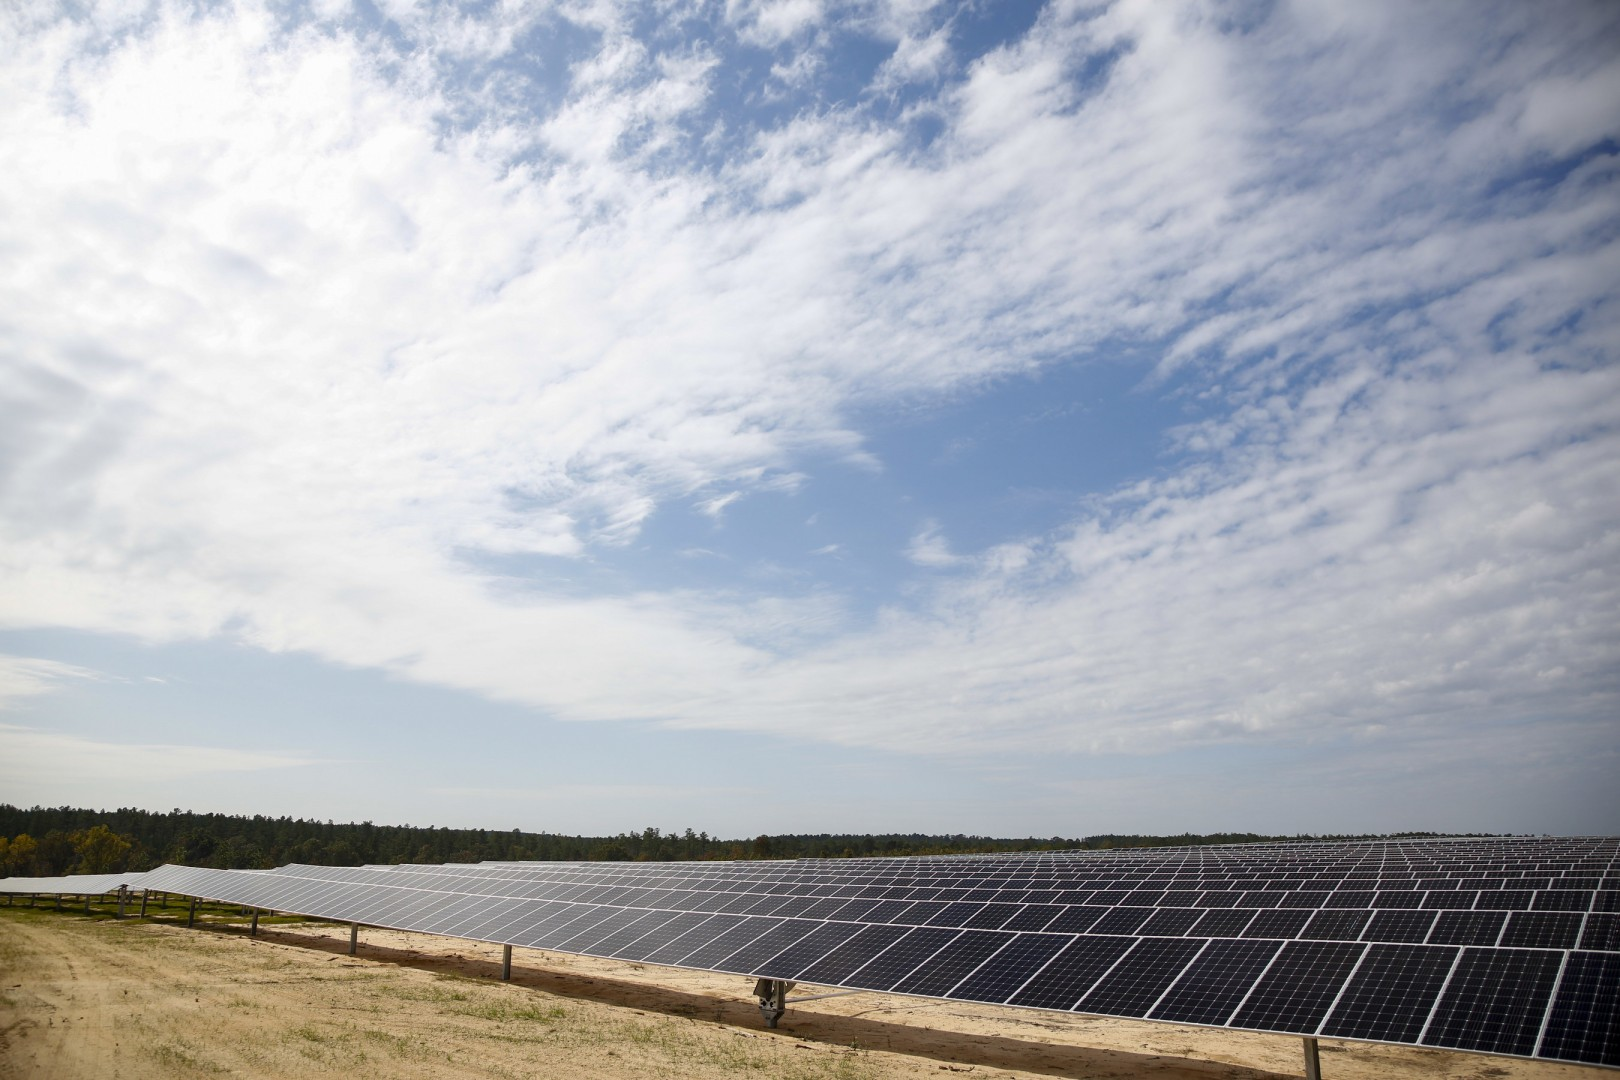 The Shaw Creek Solar Energy Center, which is owned and operated by a subsidiary of NextEra Energy Resources, is located on 226 hectares of land and features more than 270,000 PV panels. Image: NextEra Energy